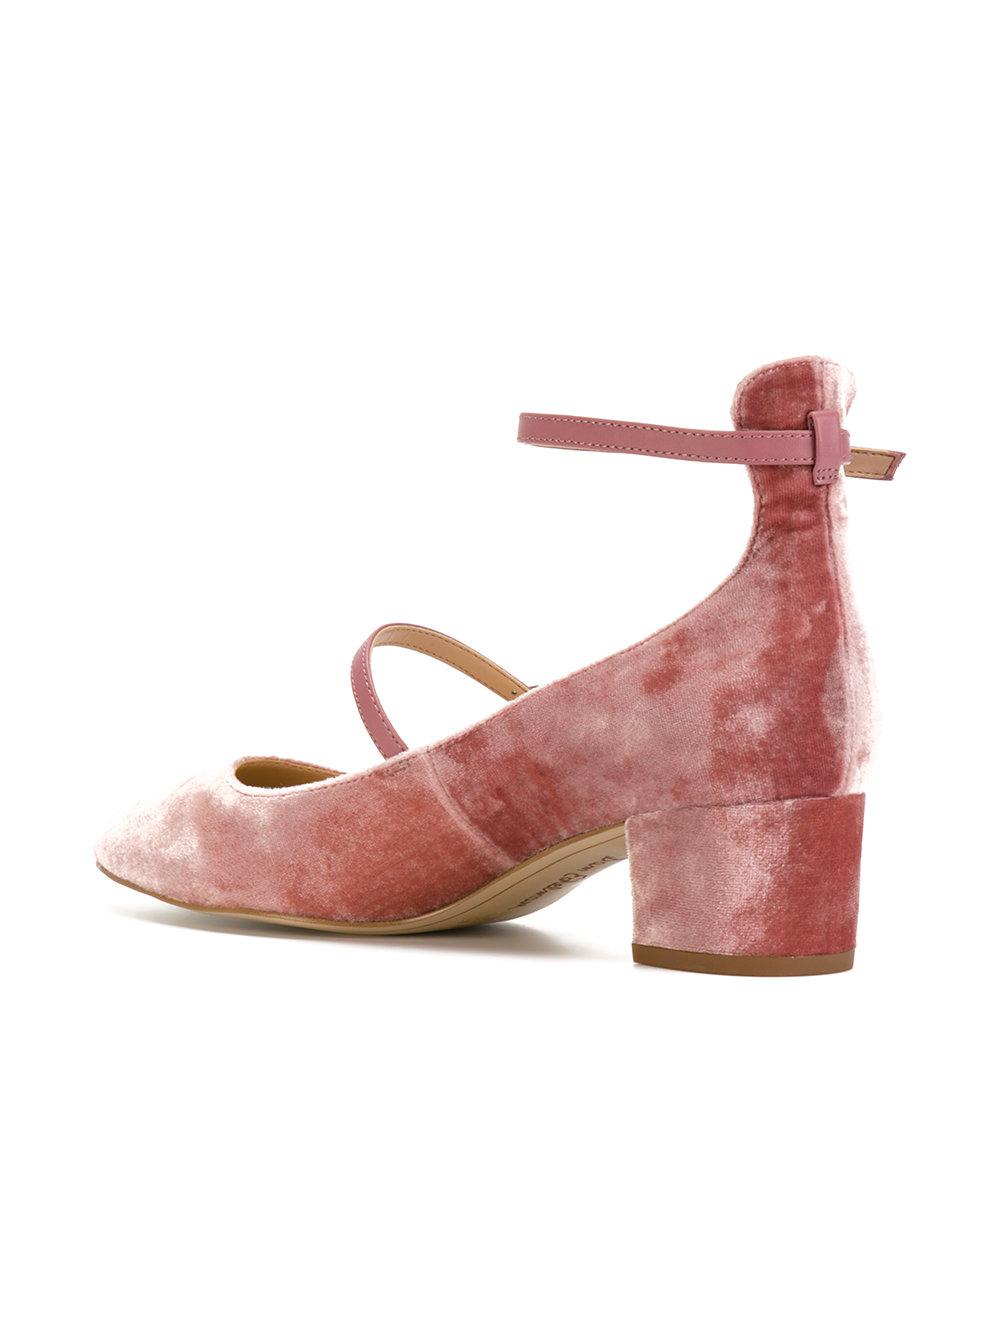 090e8cd097629 Lyst - Sam Edelman Lulie Pumps in Pink